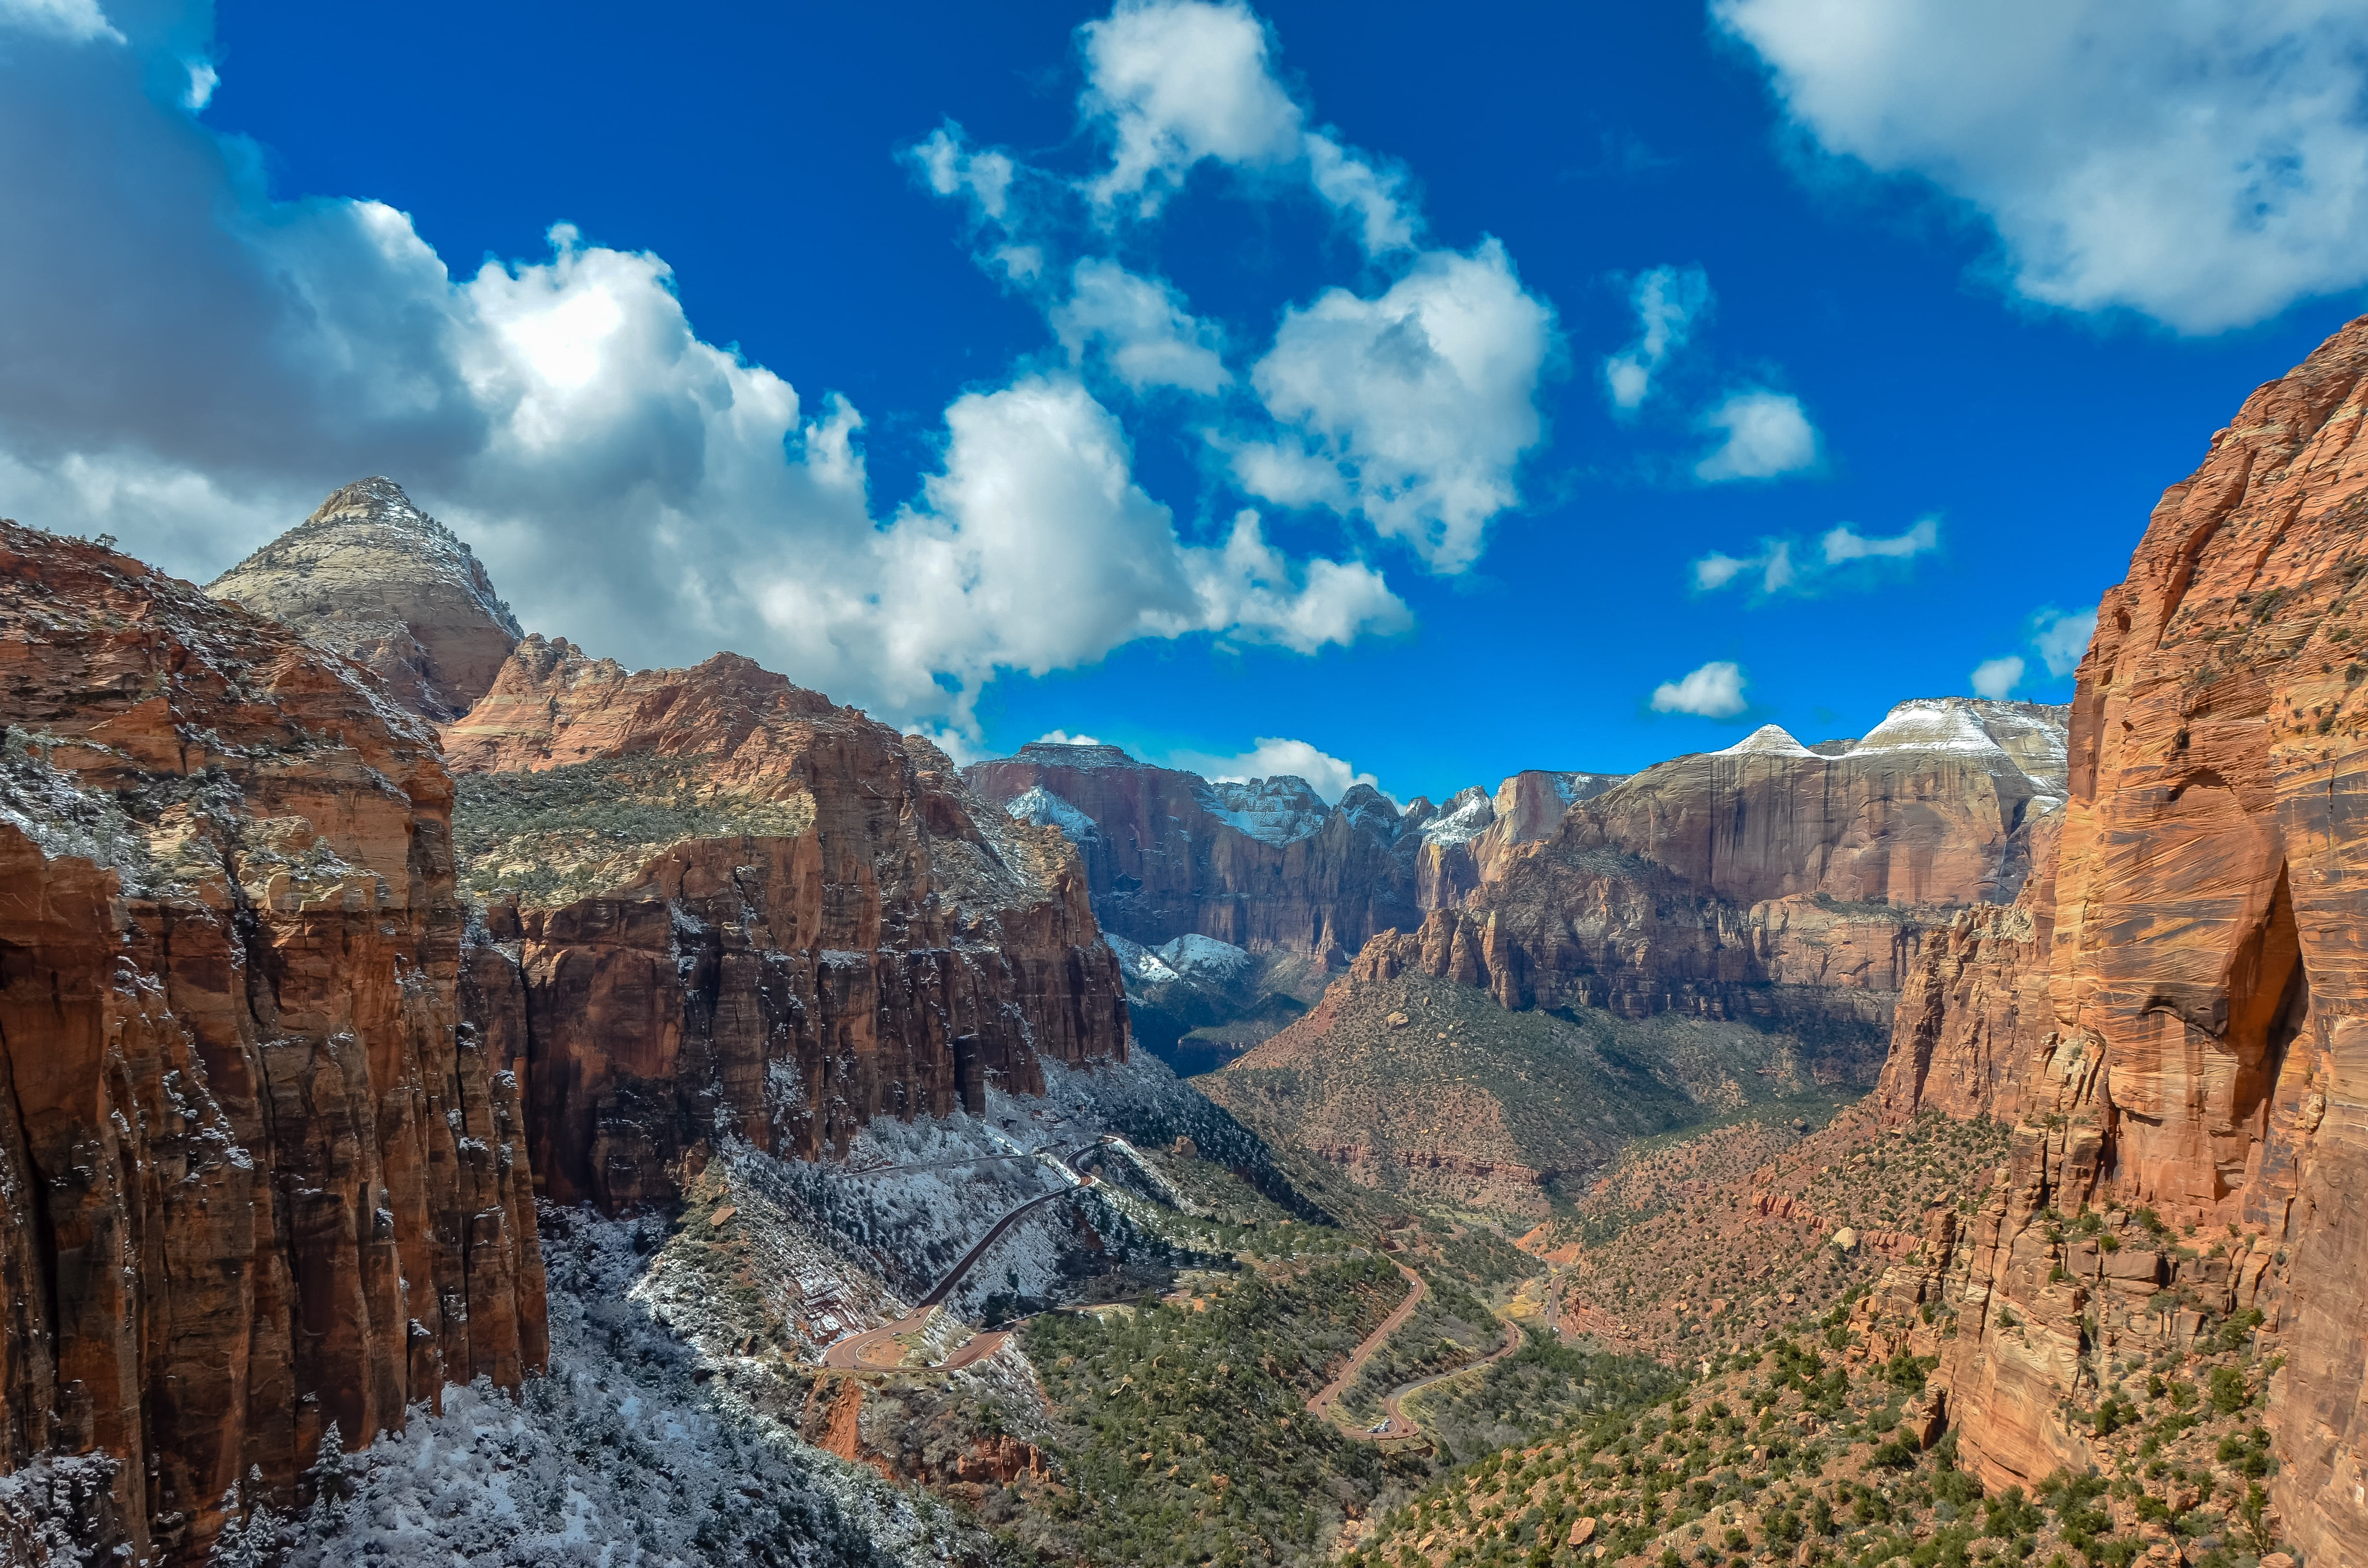 Rocky mountains Canyon Overlook Trail Zion National Park Utah 4928x3264